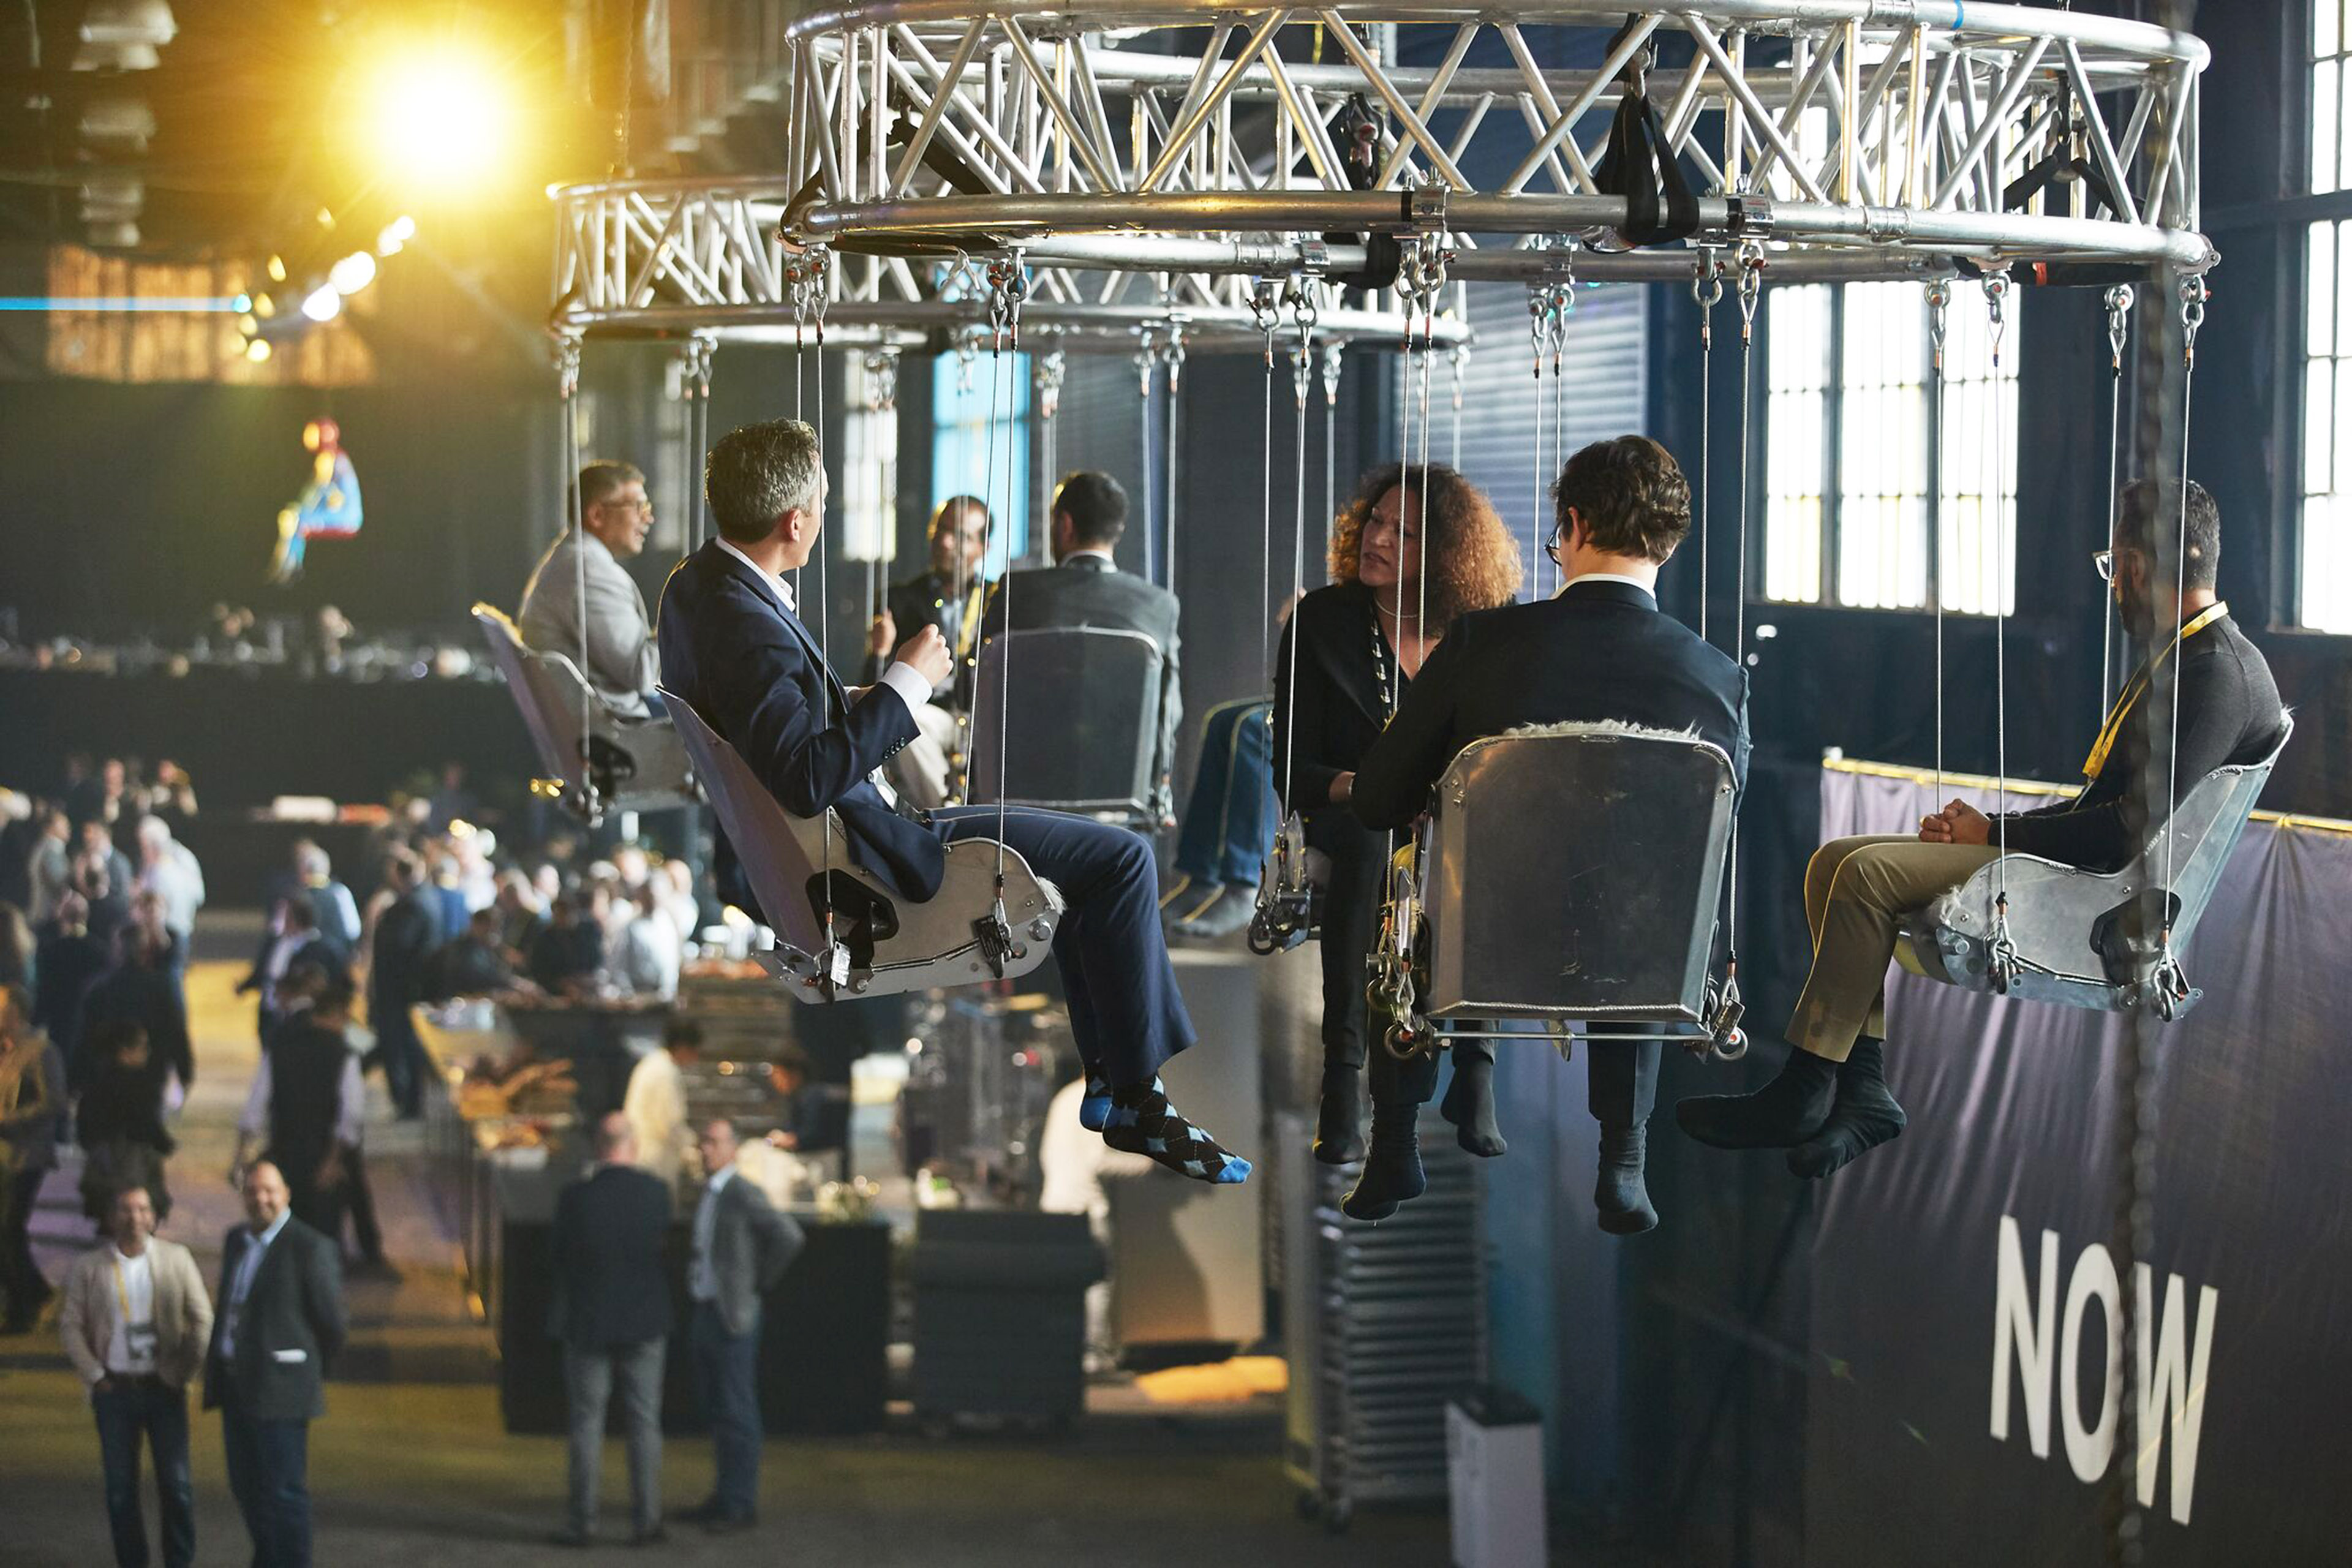 People sitting in hanging chairs at Innovation realized event image